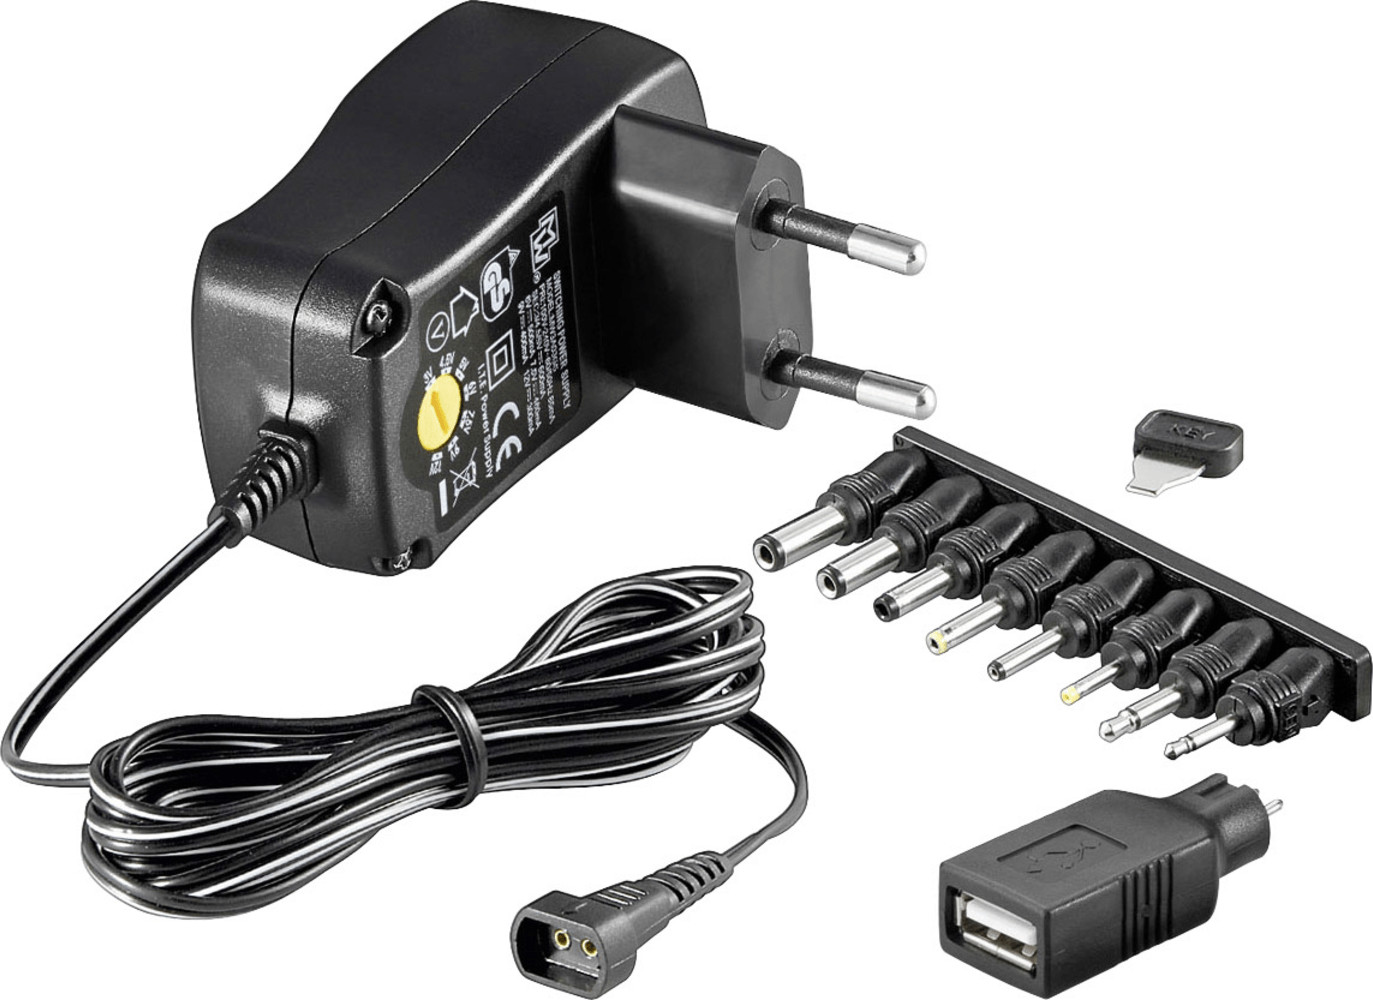 Image of Goobay 3-12V Universal-Charger